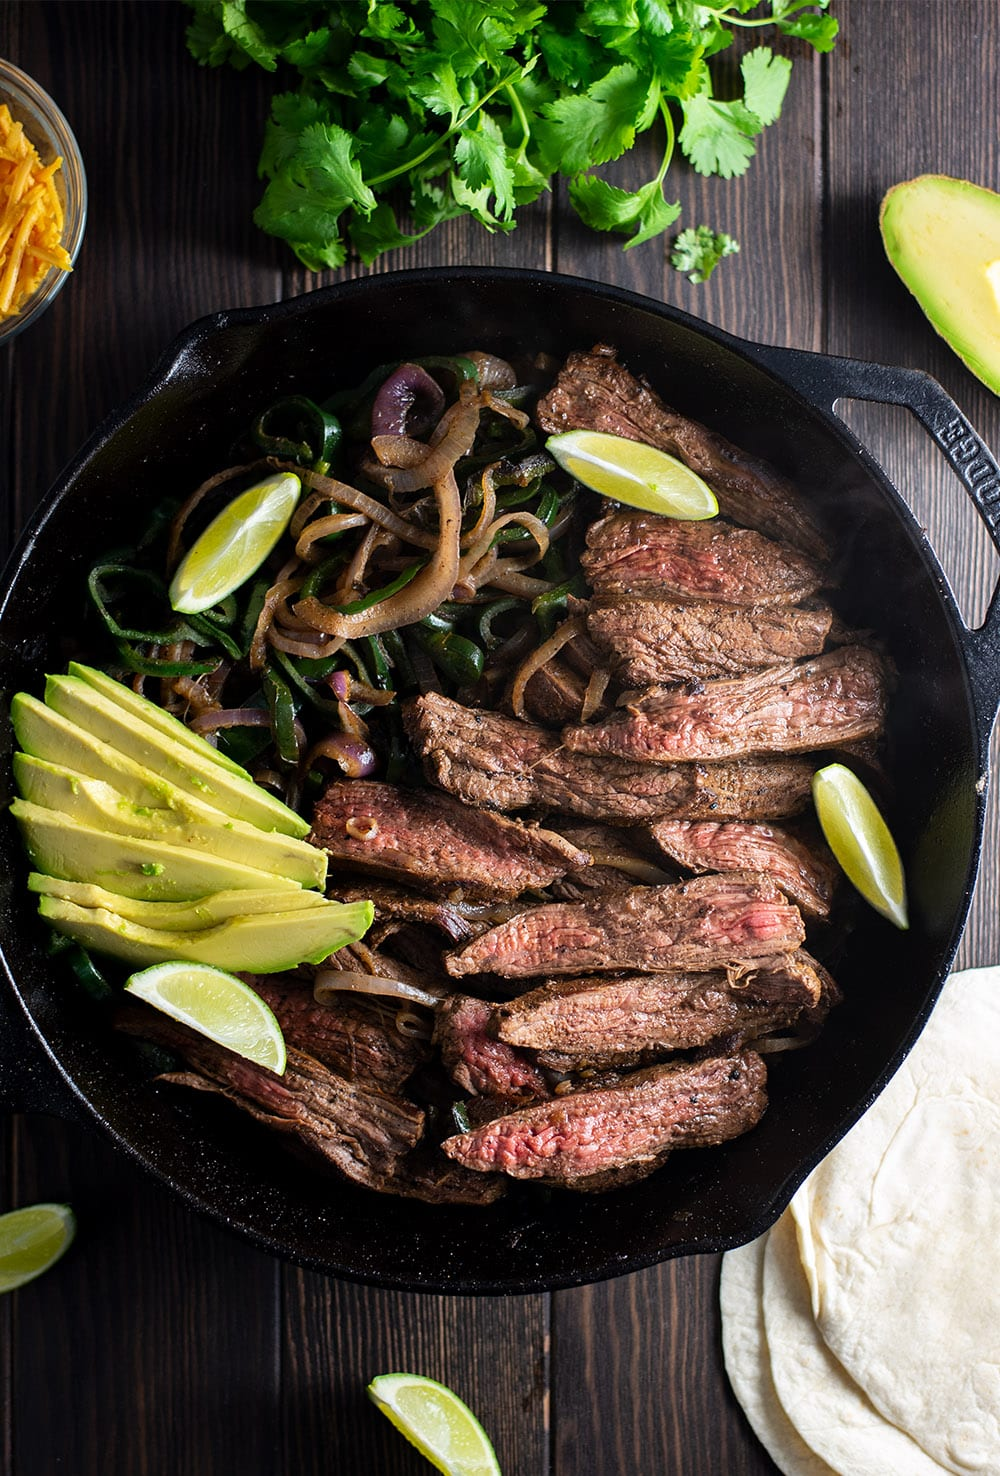 How to make steak fajitas in a cast iron skillet